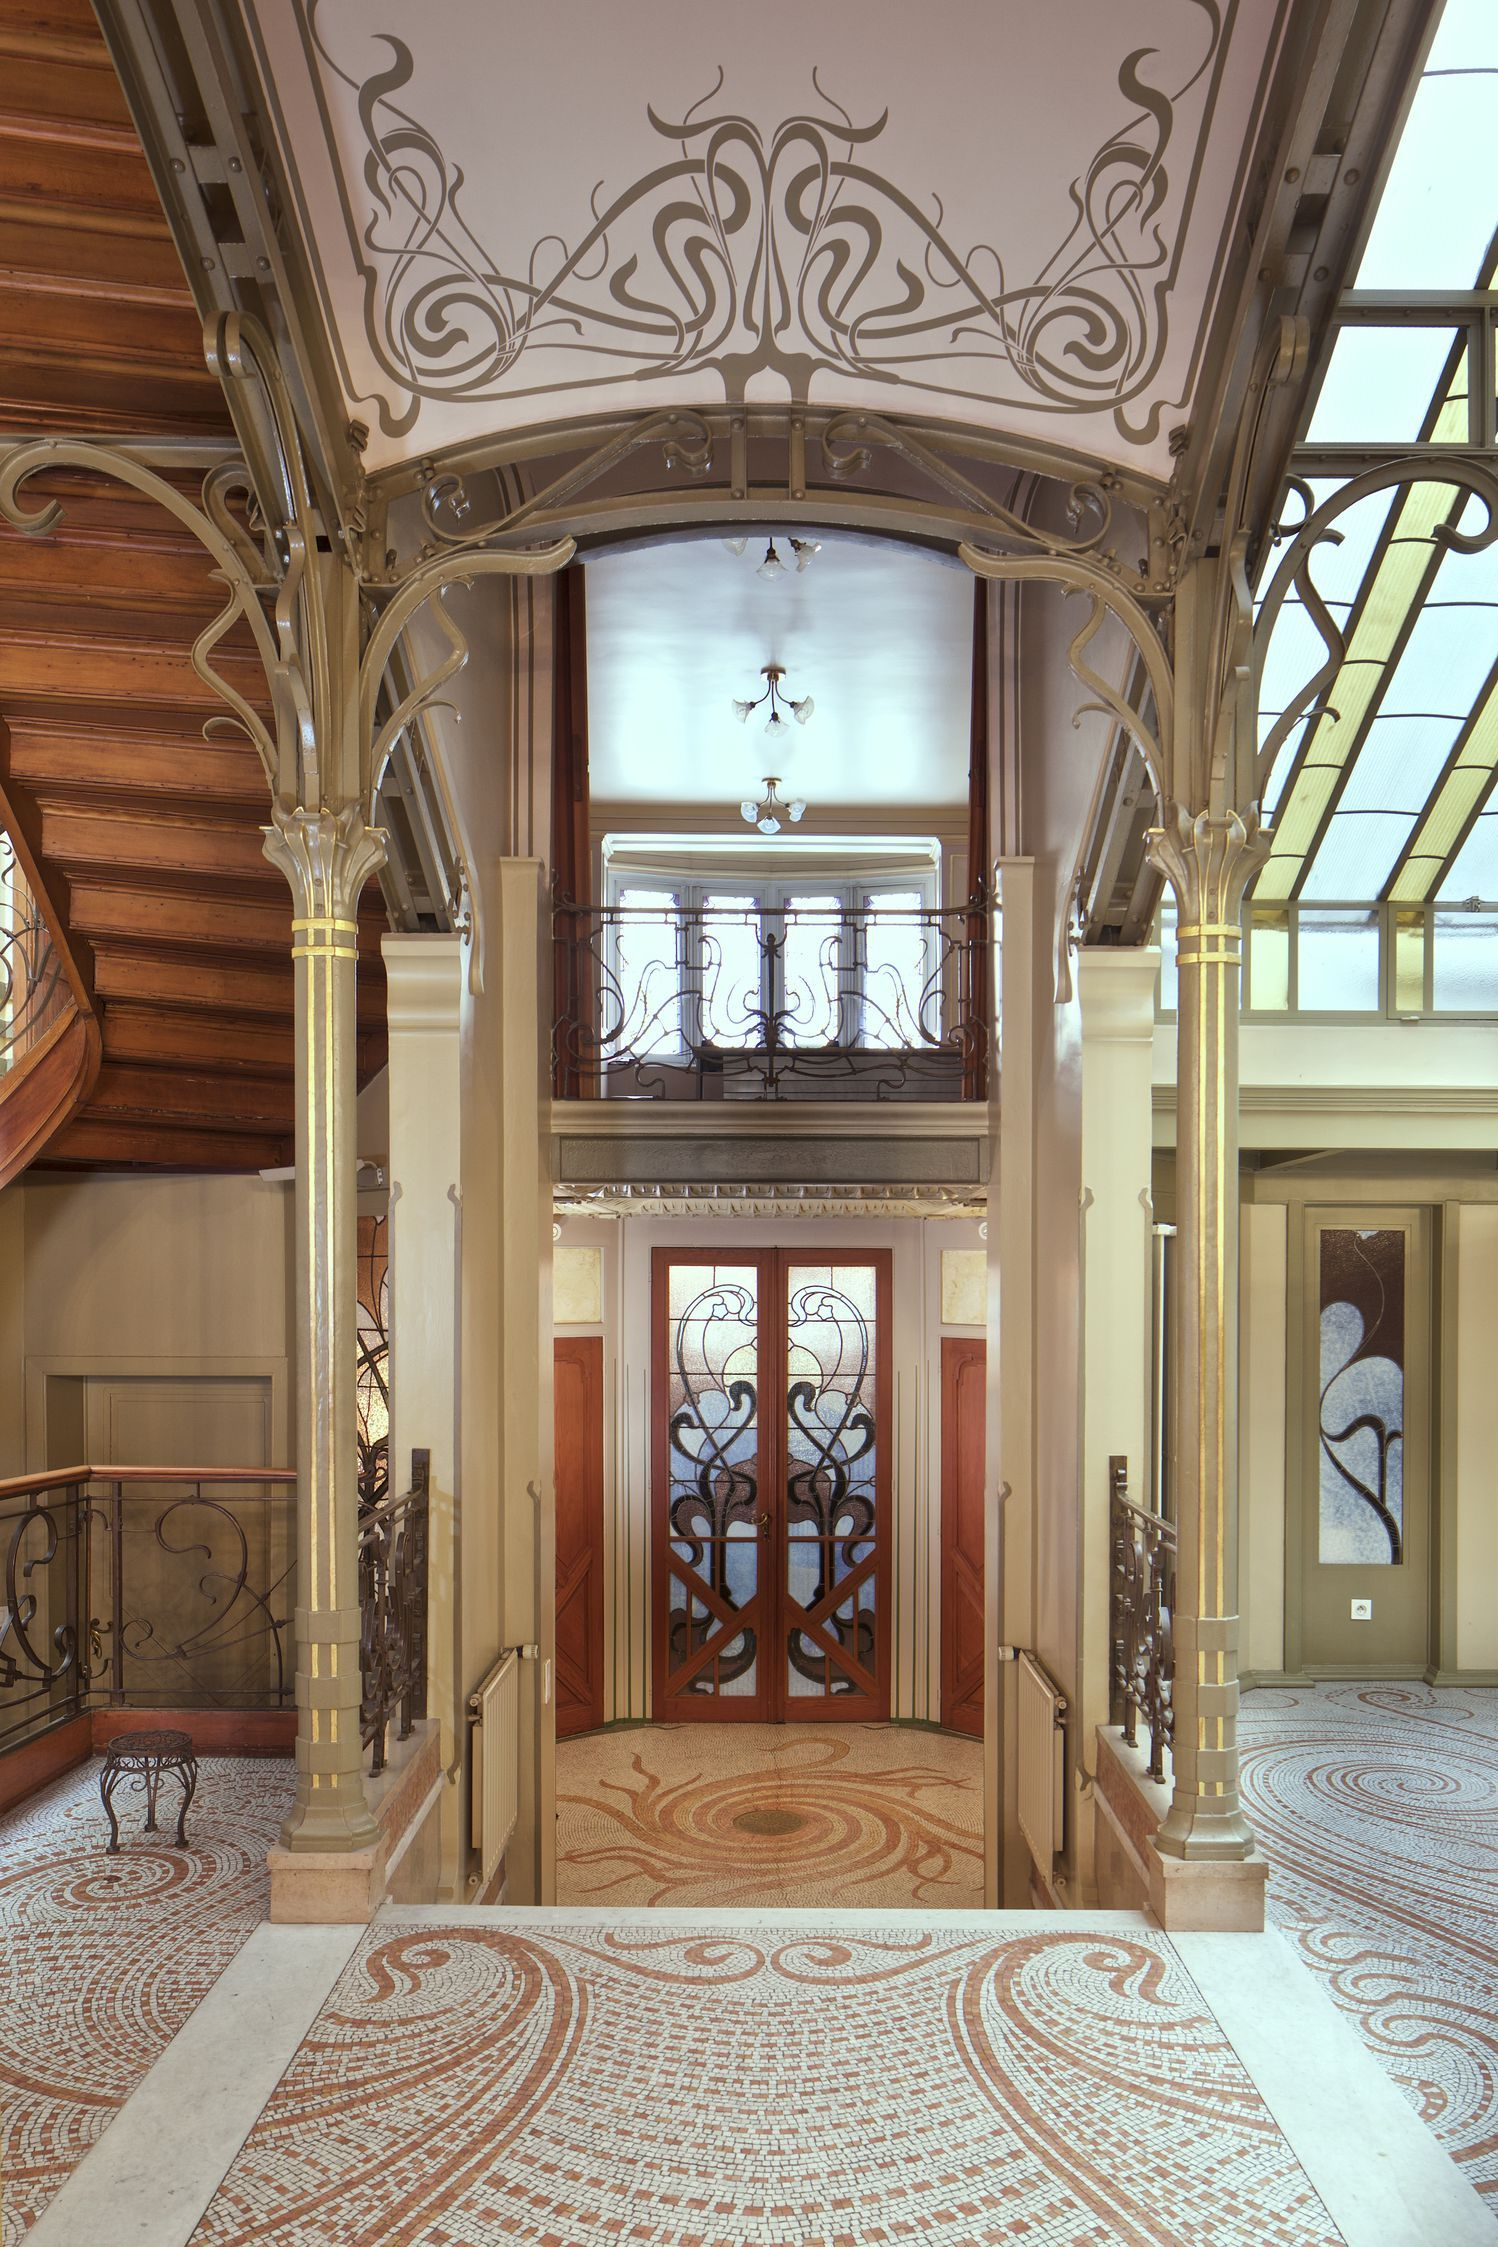 Heres Everything You Need to Know About Art Nouveau Design